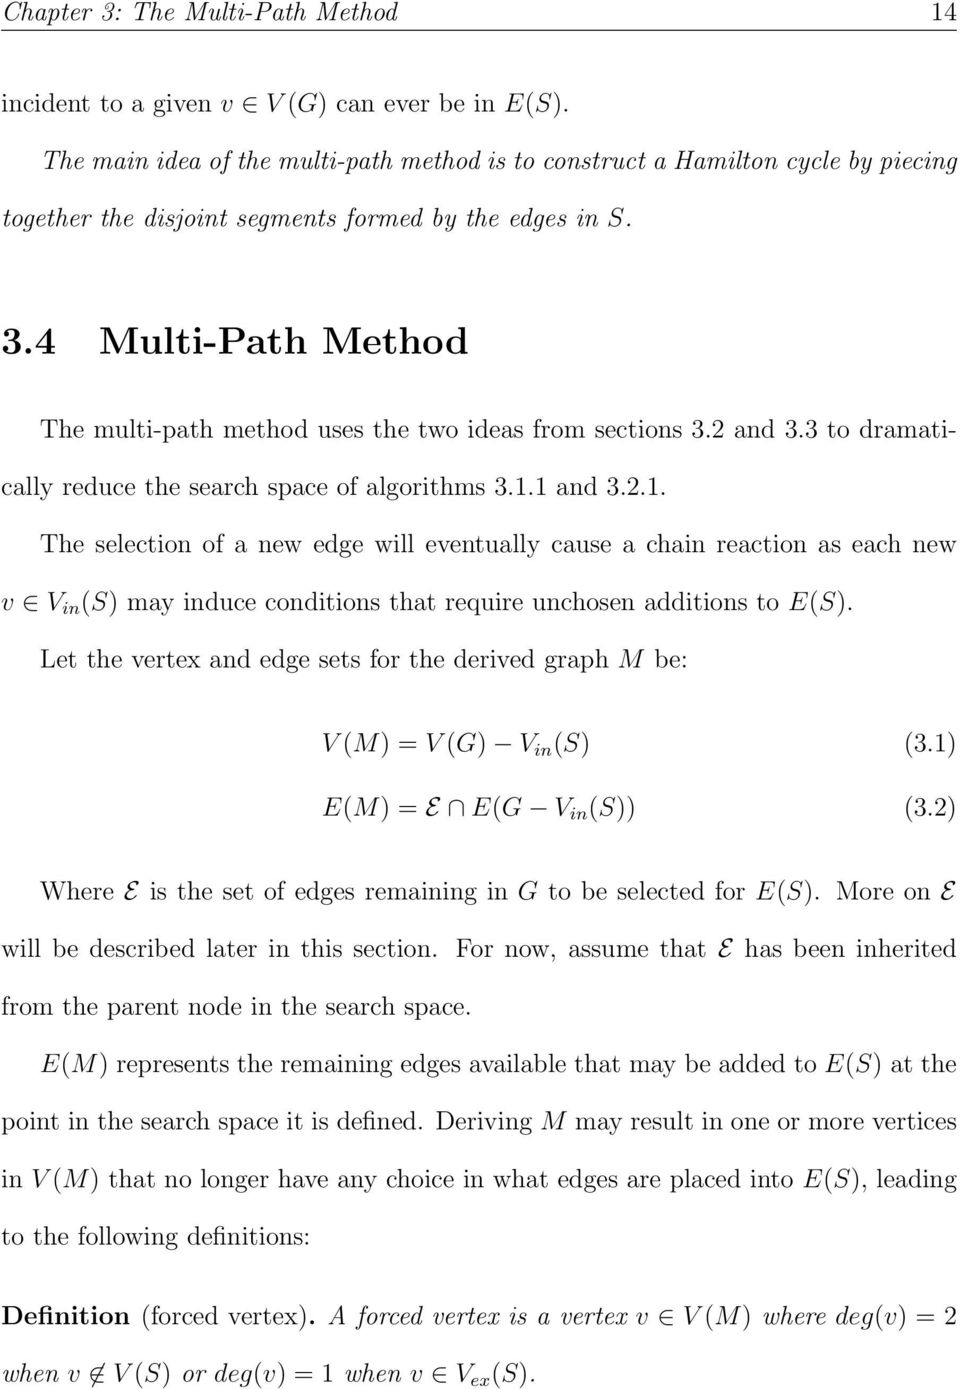 4 Multi-Path Method The multi-path method uses the two ideas from sections 3.2 and 3.3 to dramatically reduce the search space of algorithms 3.1.